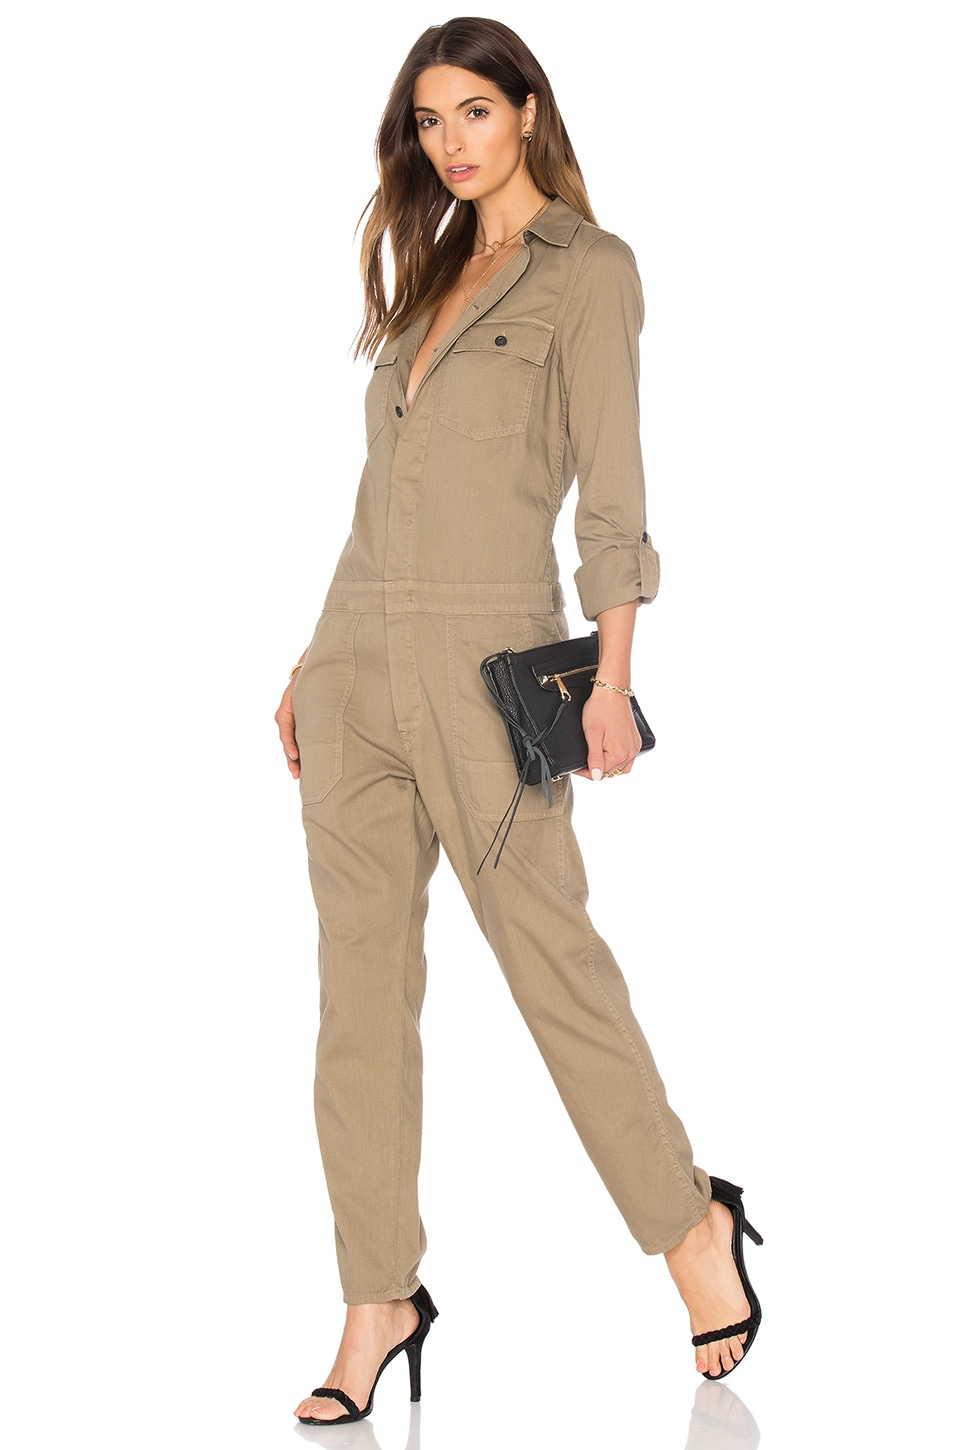 Citizens of Humanity Tallulah Jumpsuit in Beach Dune